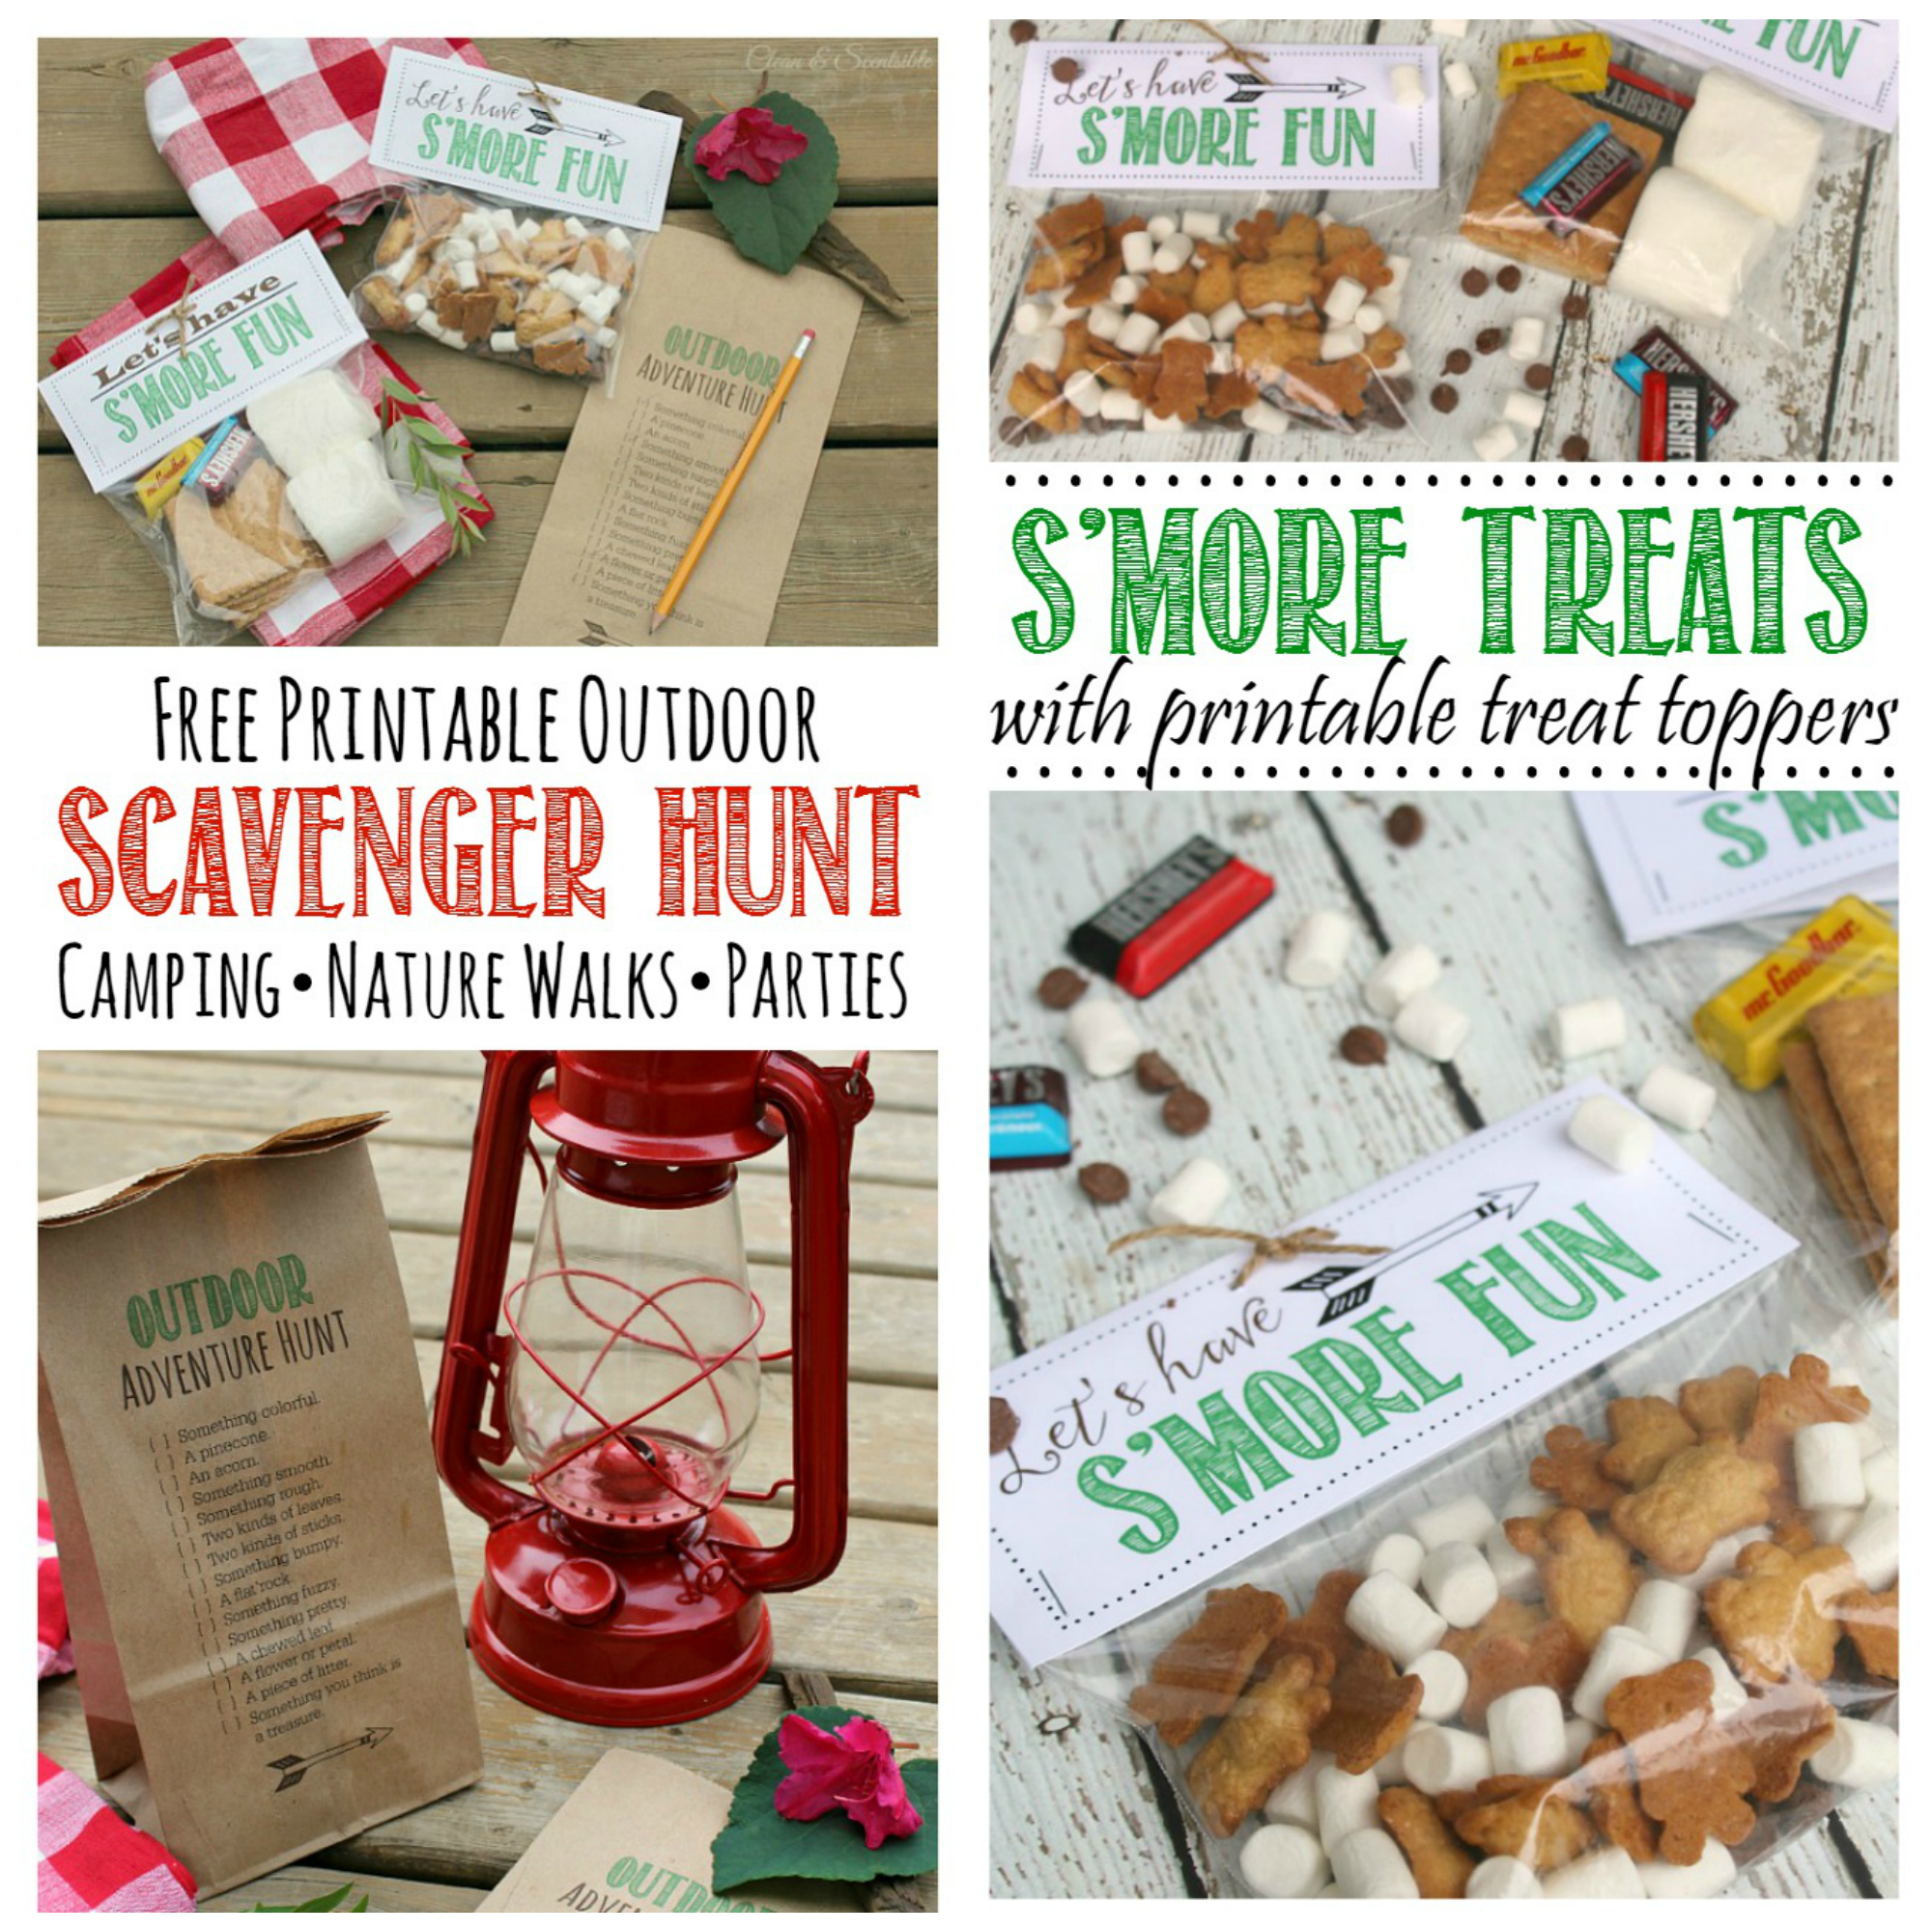 Outdoor Scavenger Hunt and S'Mores Printables - Featured Post HMLP 45